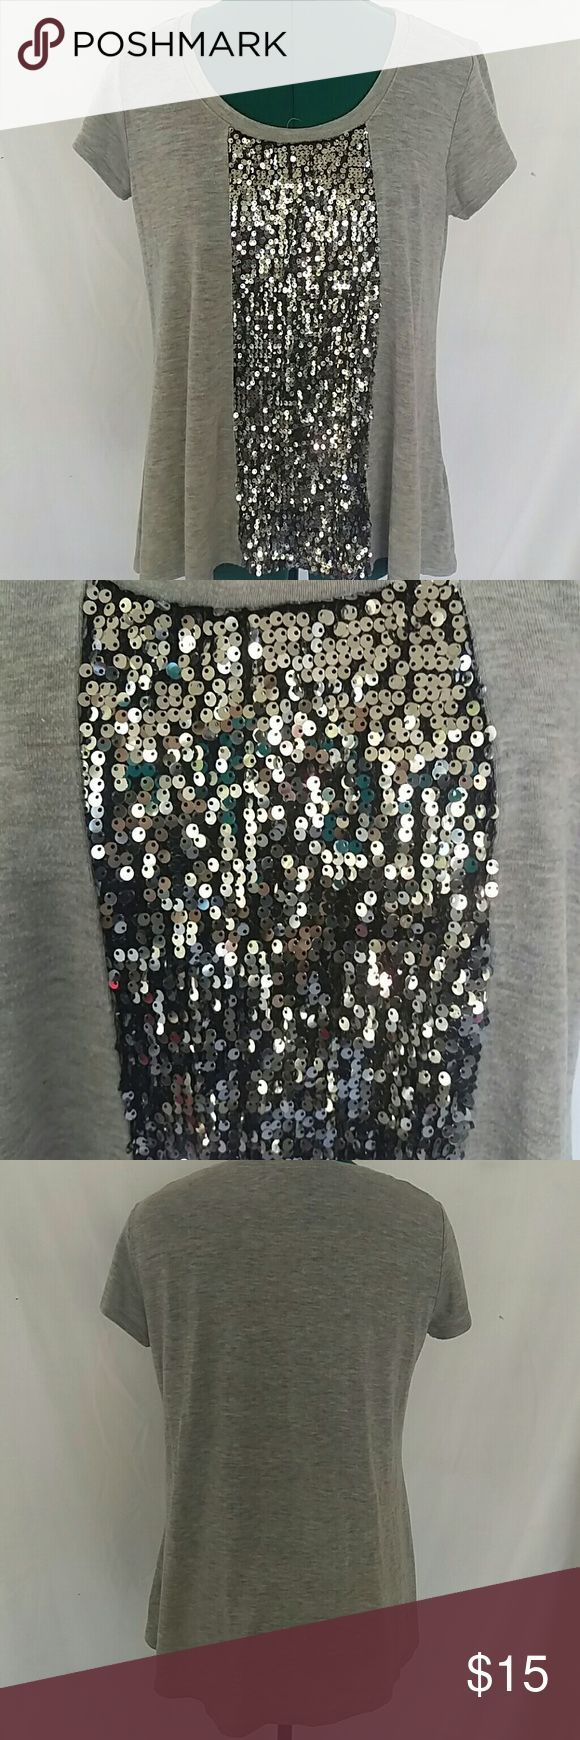 Gray Sequin Apostrophe petite shirt Gray sequin Apostrophe shirt. Great condition, no missing sequin from what I can see. Size Medium Petite. Apostrophe Tops Tees - Short Sleeve